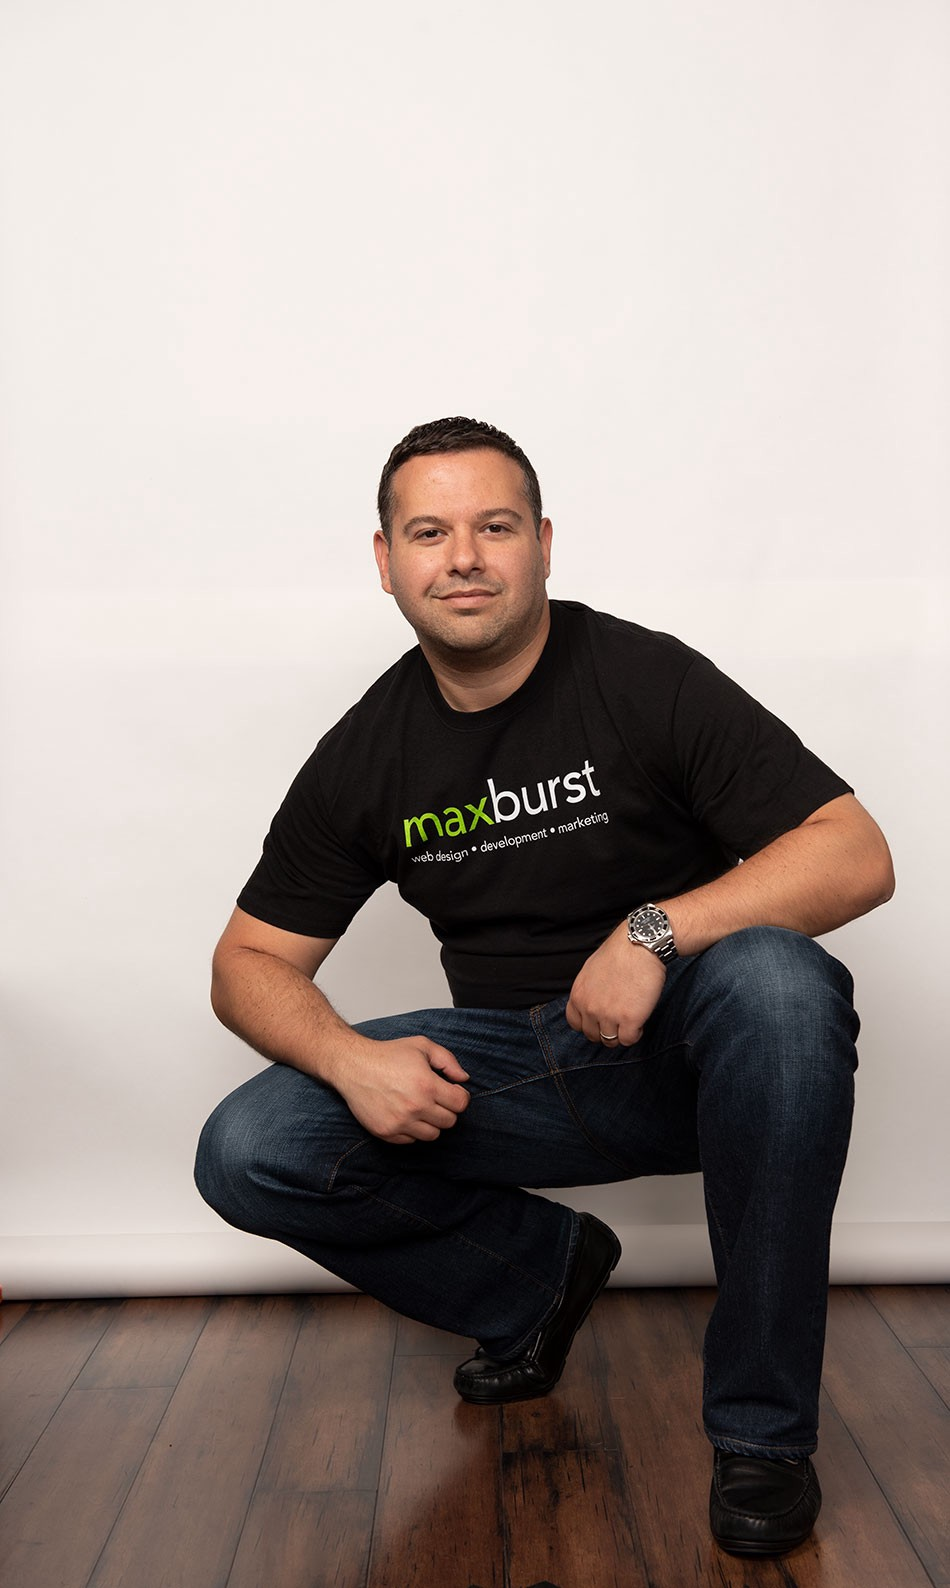 400 Tips To Master Your Email And Have A Stress Free Inbox Tendencies Tshirt Legend Led Turquoise S Andrew Ruditser Co Founder Lead Technology Coordinator Maxburst Inc